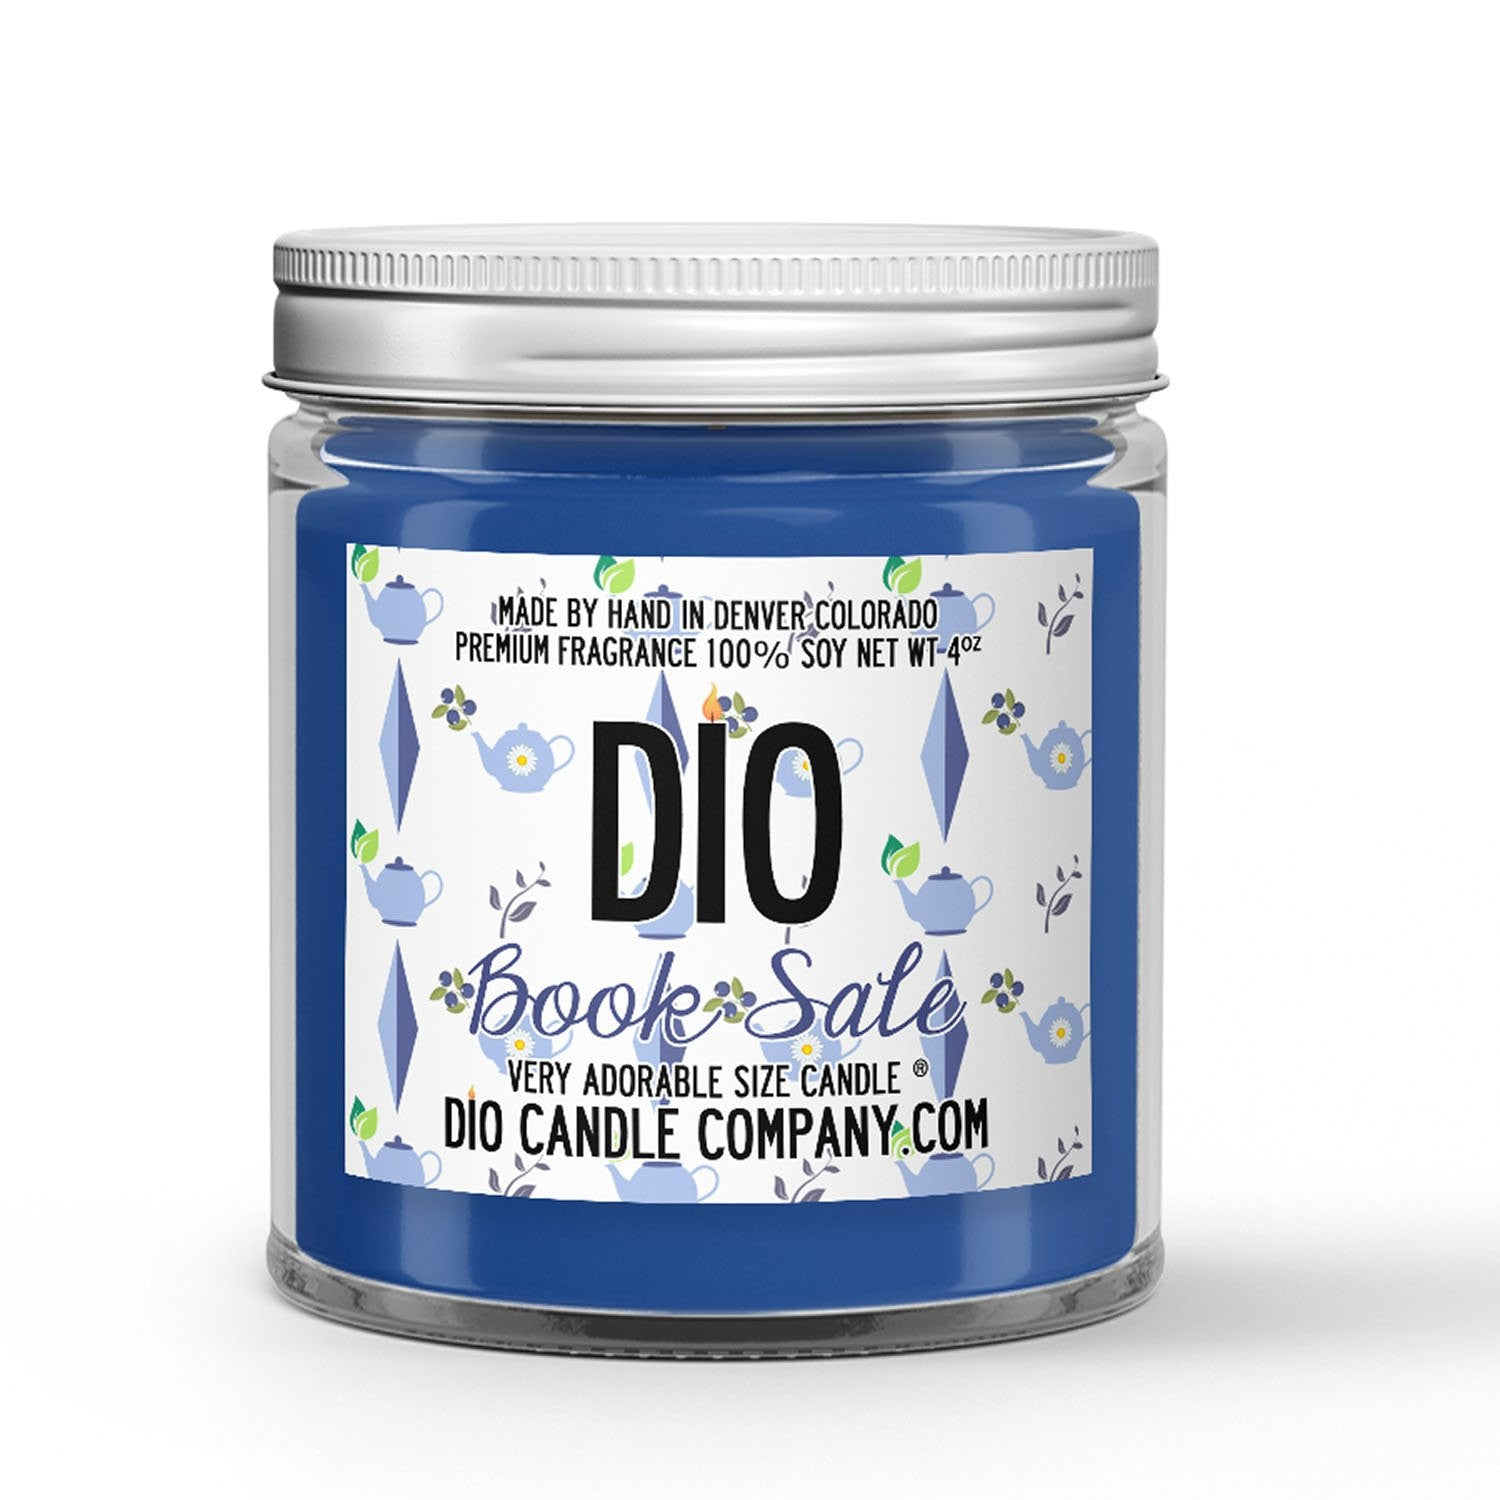 Book Sale Candle Lemon - Blueberry - Earl Grey Scented - Dio Candle Company